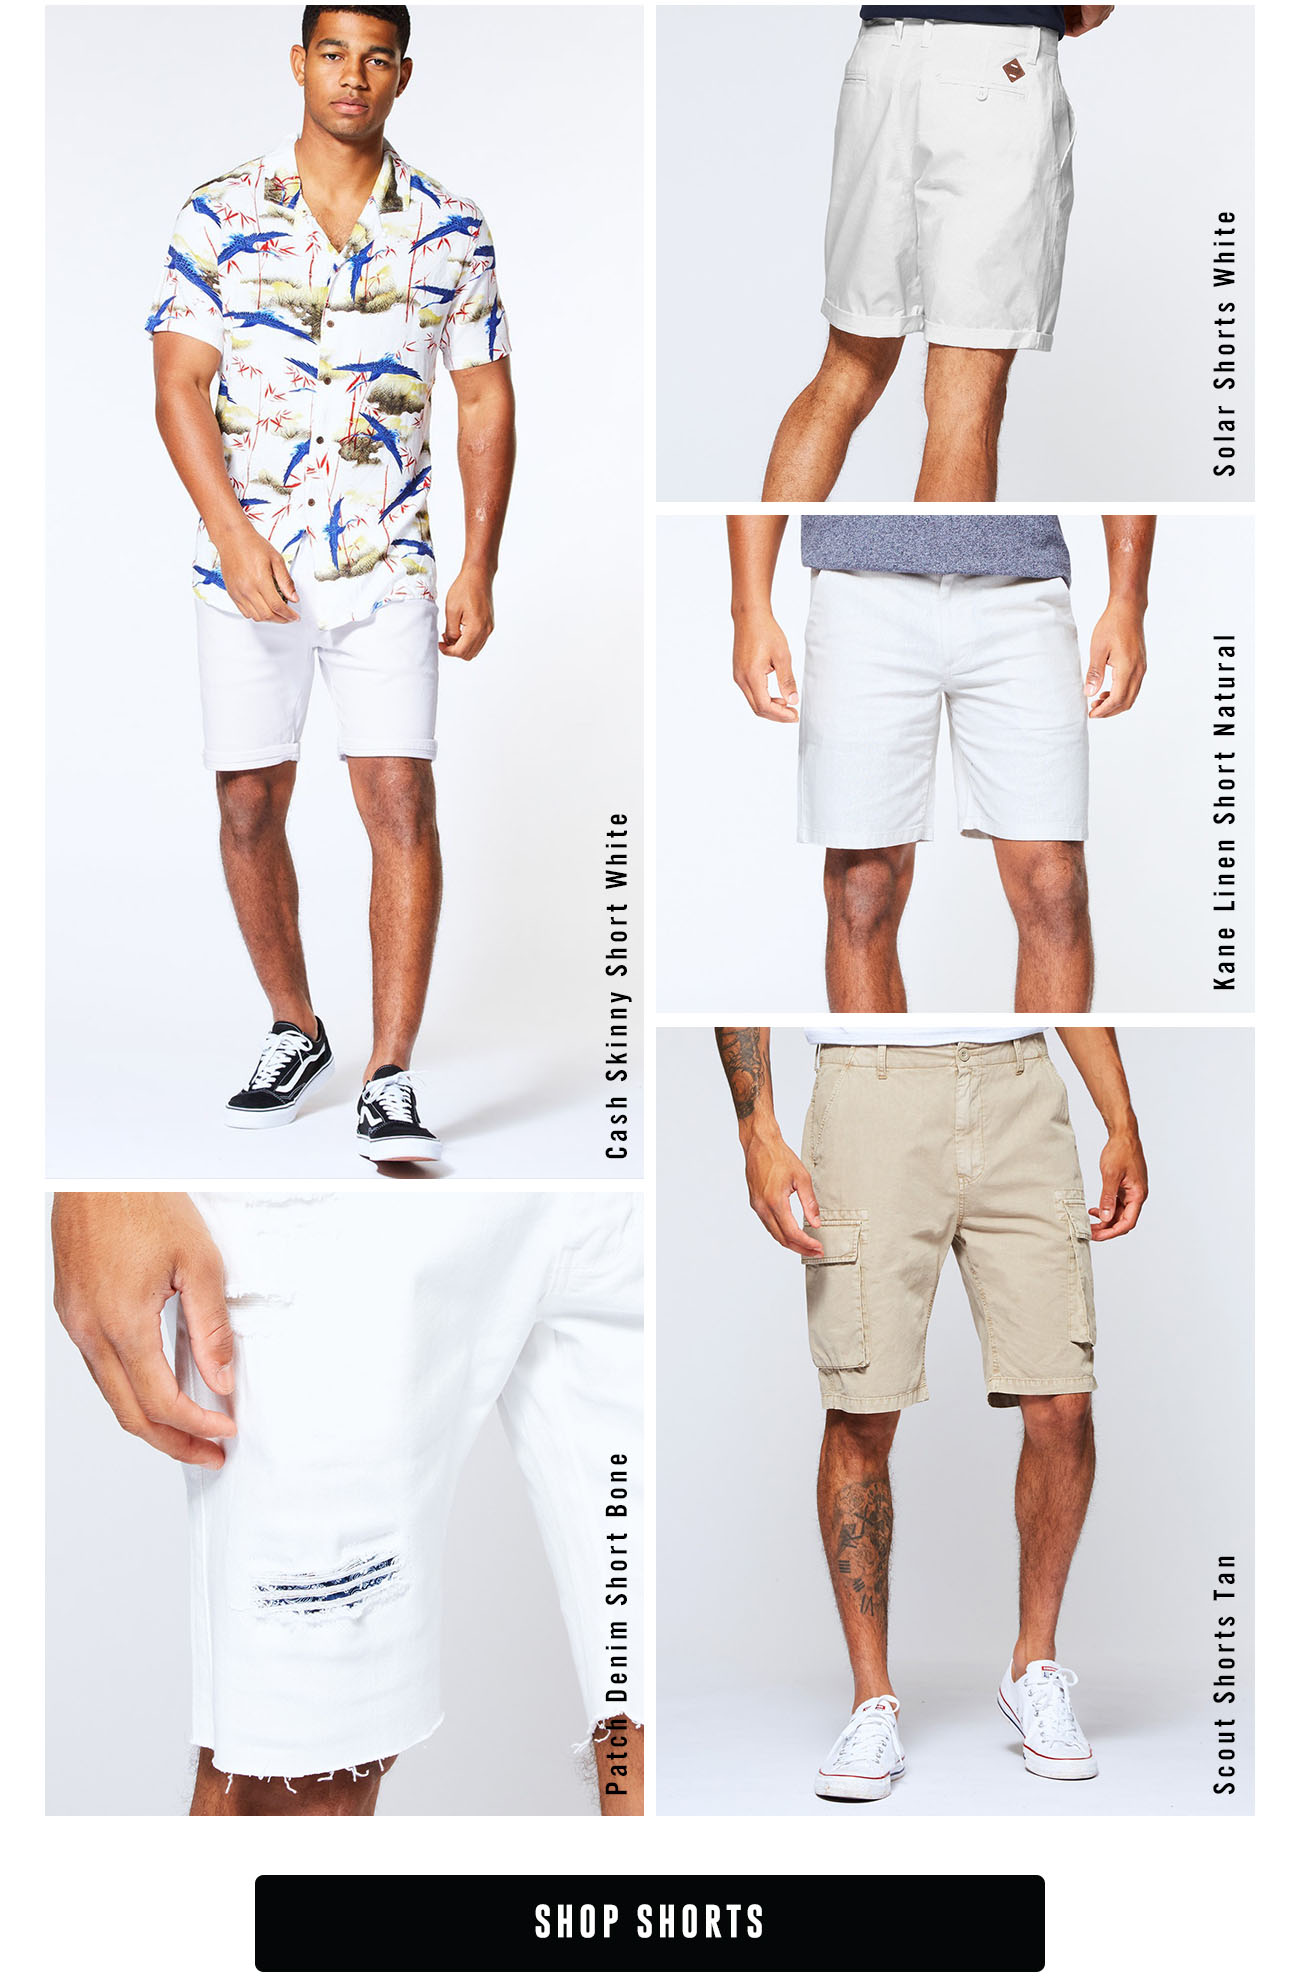 If you need Denim or Chino shorts, we've got them!